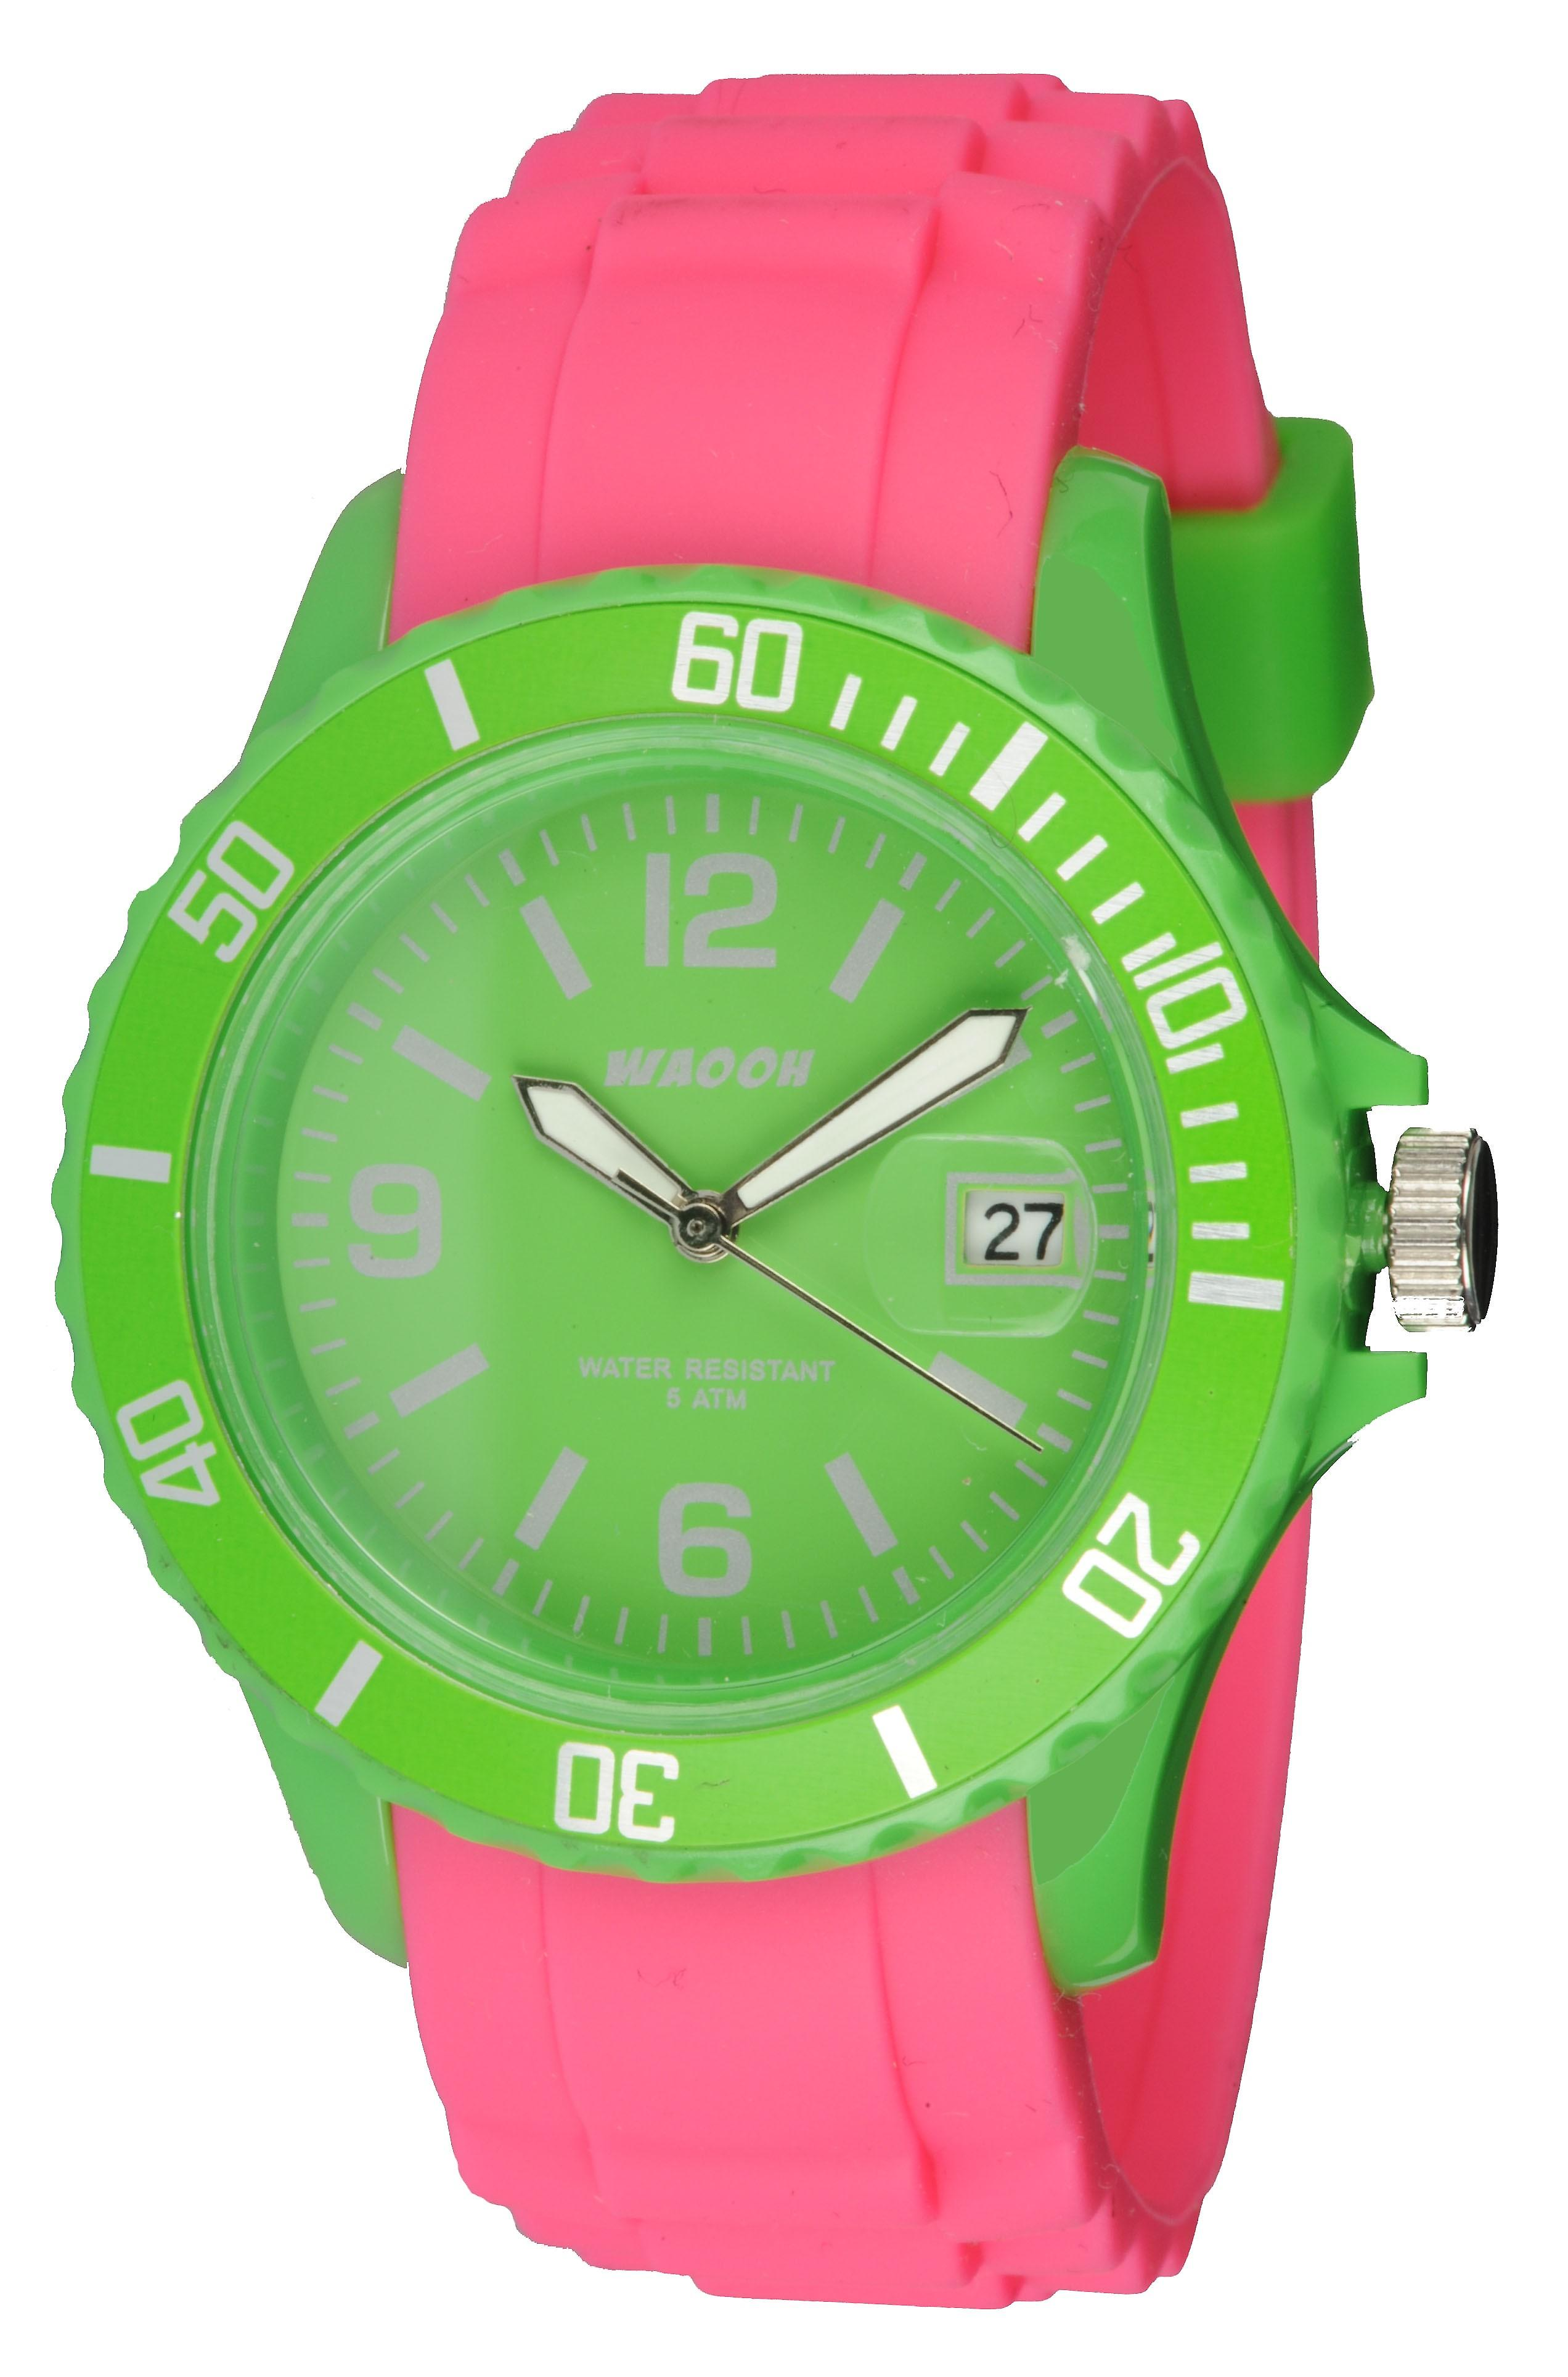 Waooh - Monaco38 Watch - Two Tone & Green